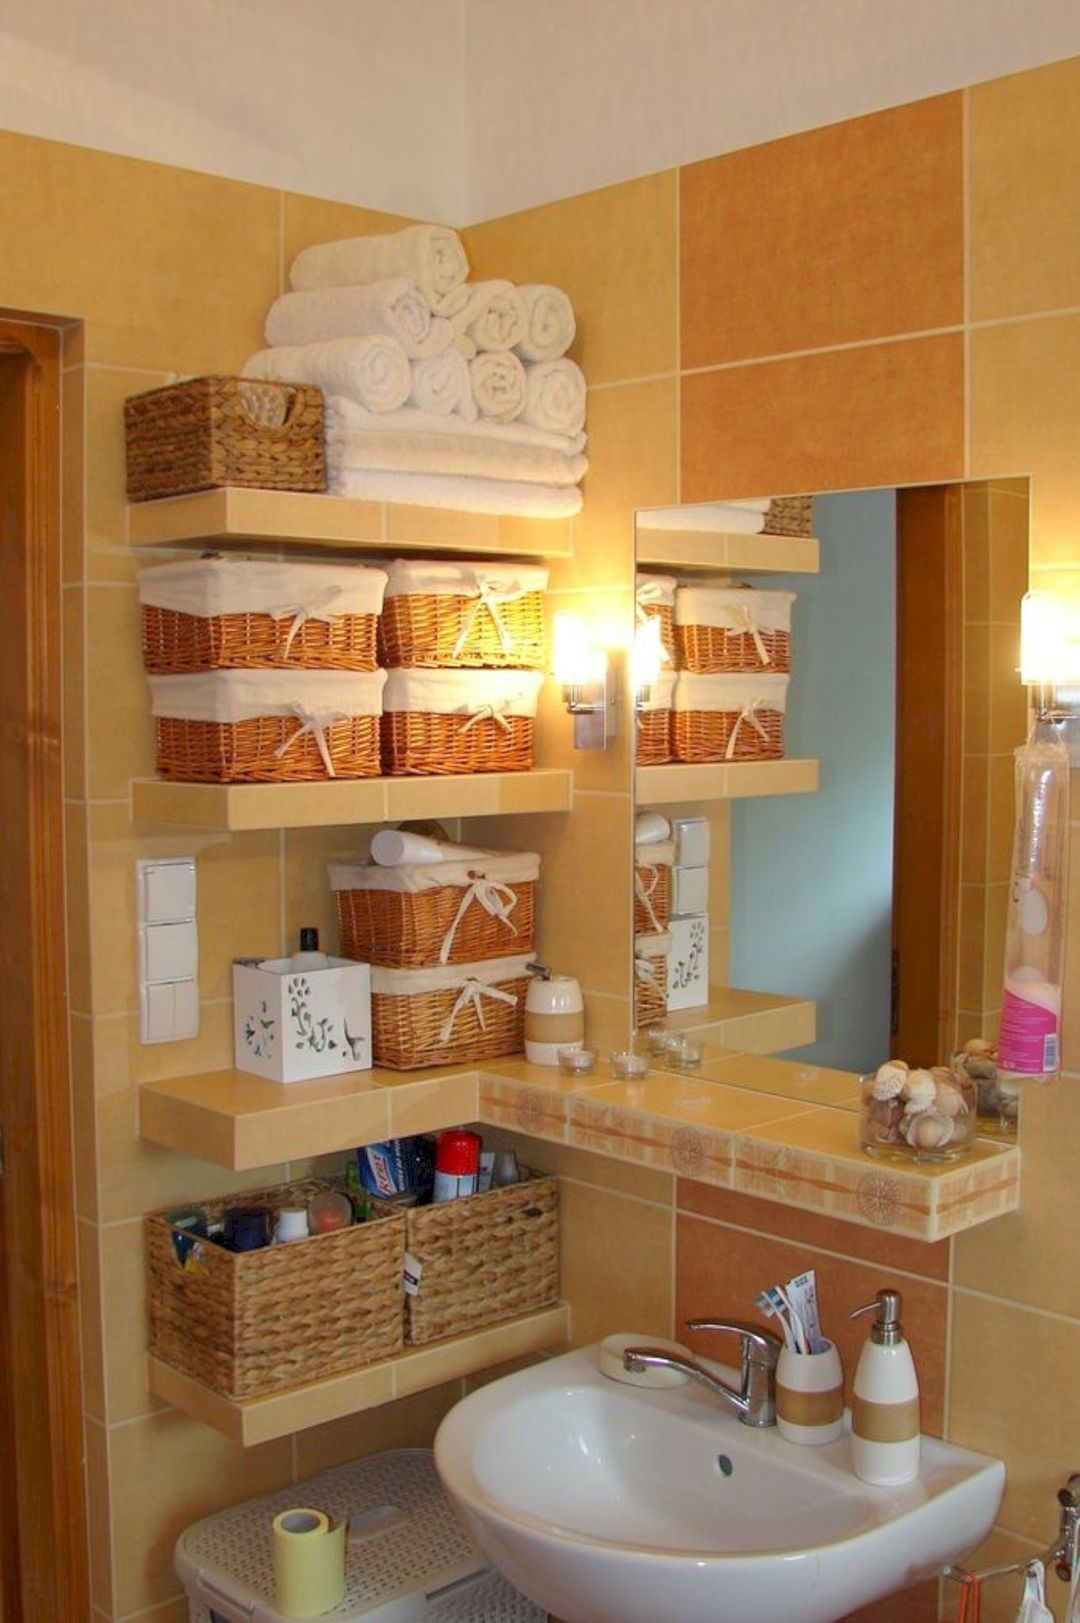 29 Space-Efficient Bathroom Storage Ideas that Look Beautiful #bathroomdecoration